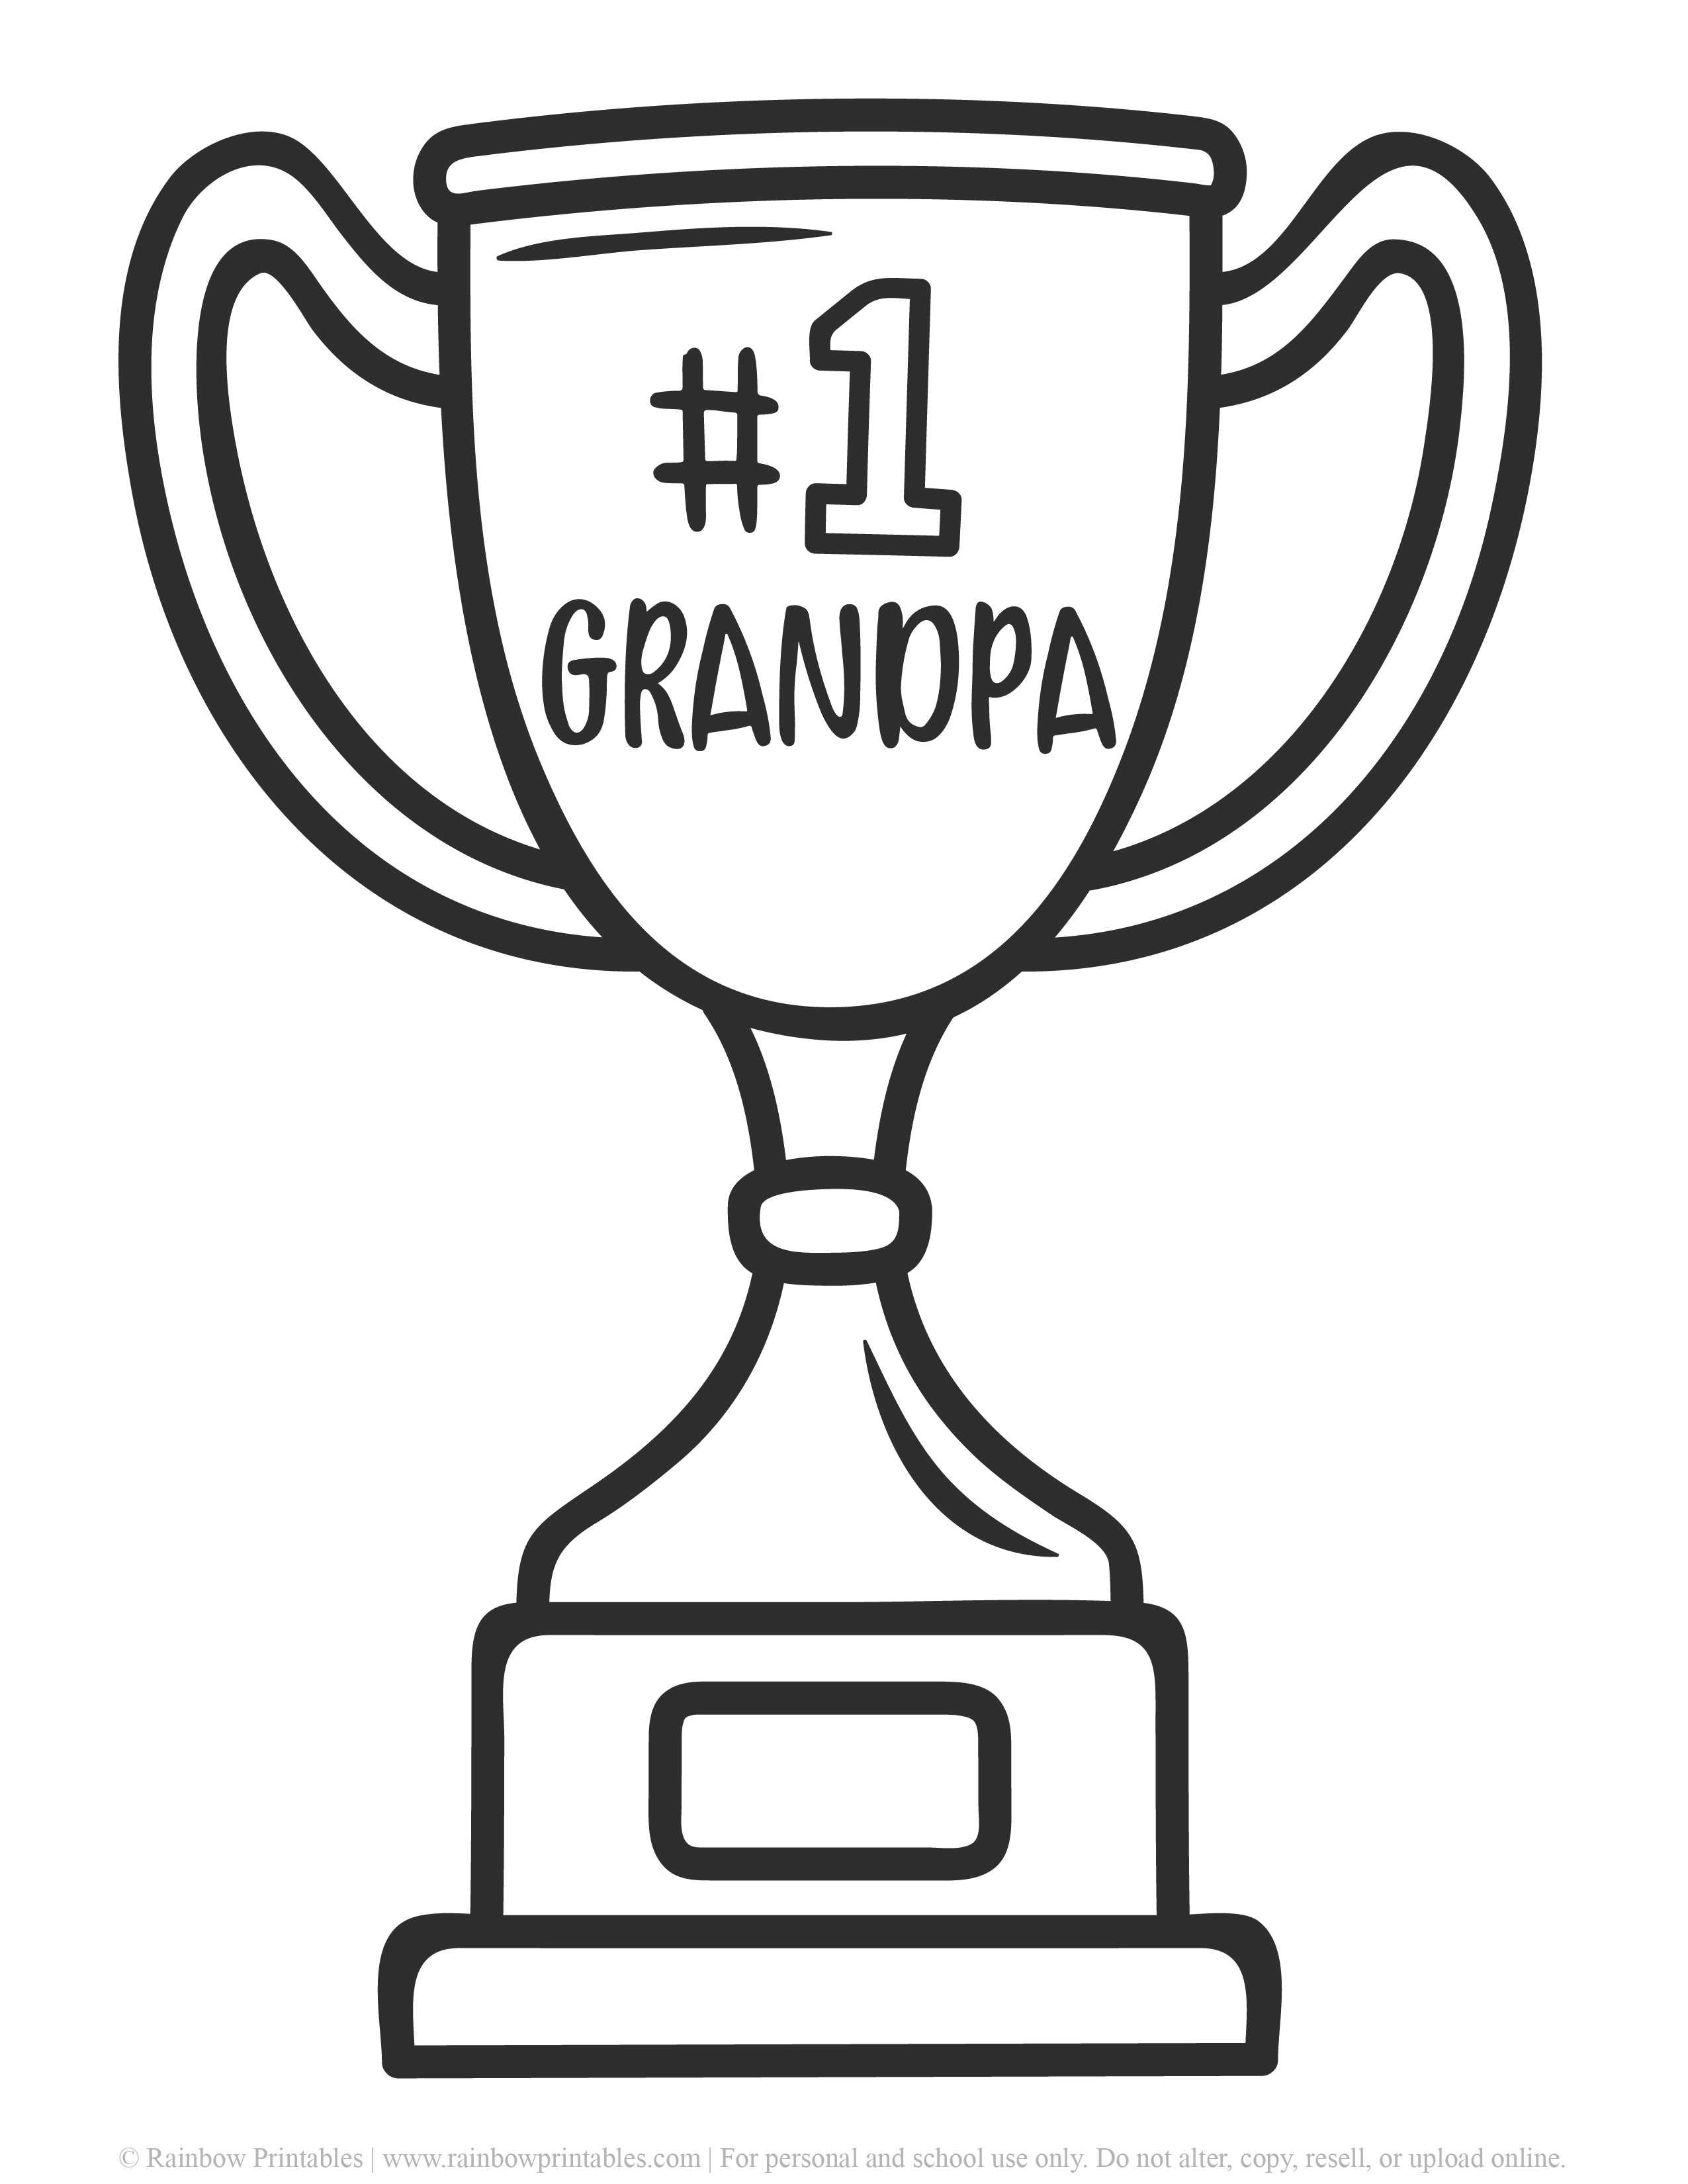 Number one grandpa trophy happy fathers day grandfather appreciation coloring page Father's Day Punny Greeting Card Clipart Printable